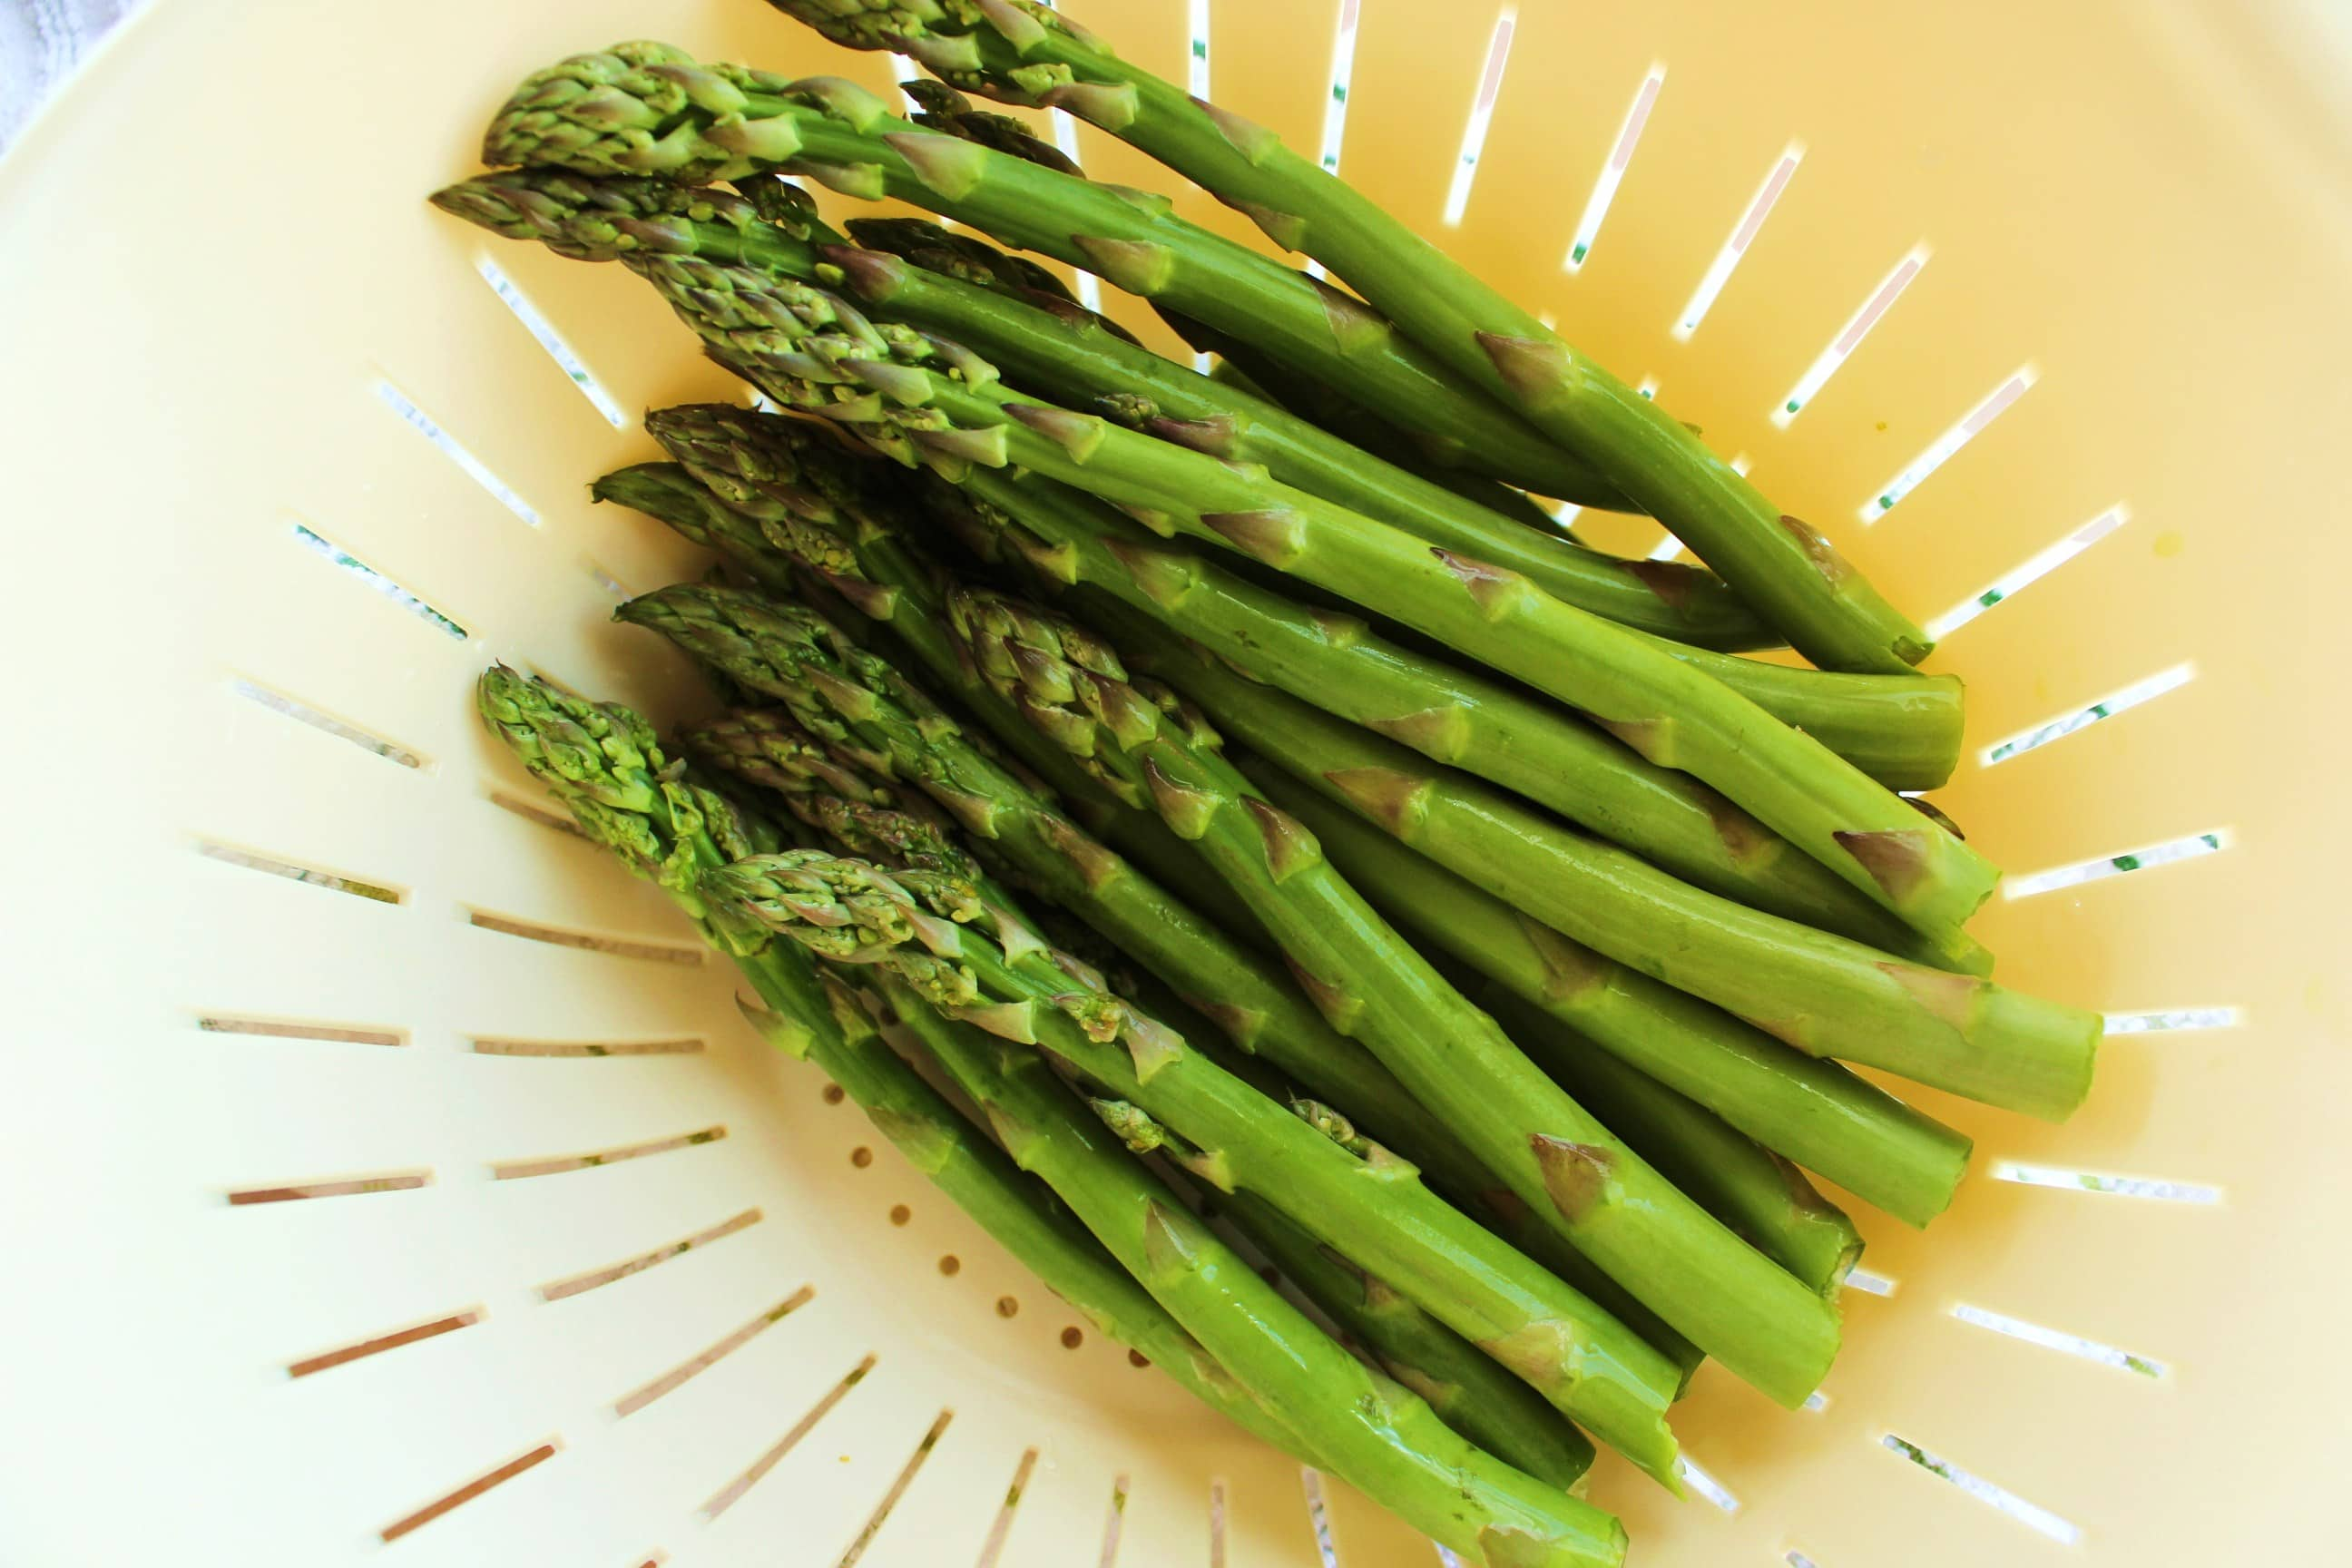 Fresh asparagus with stems removed